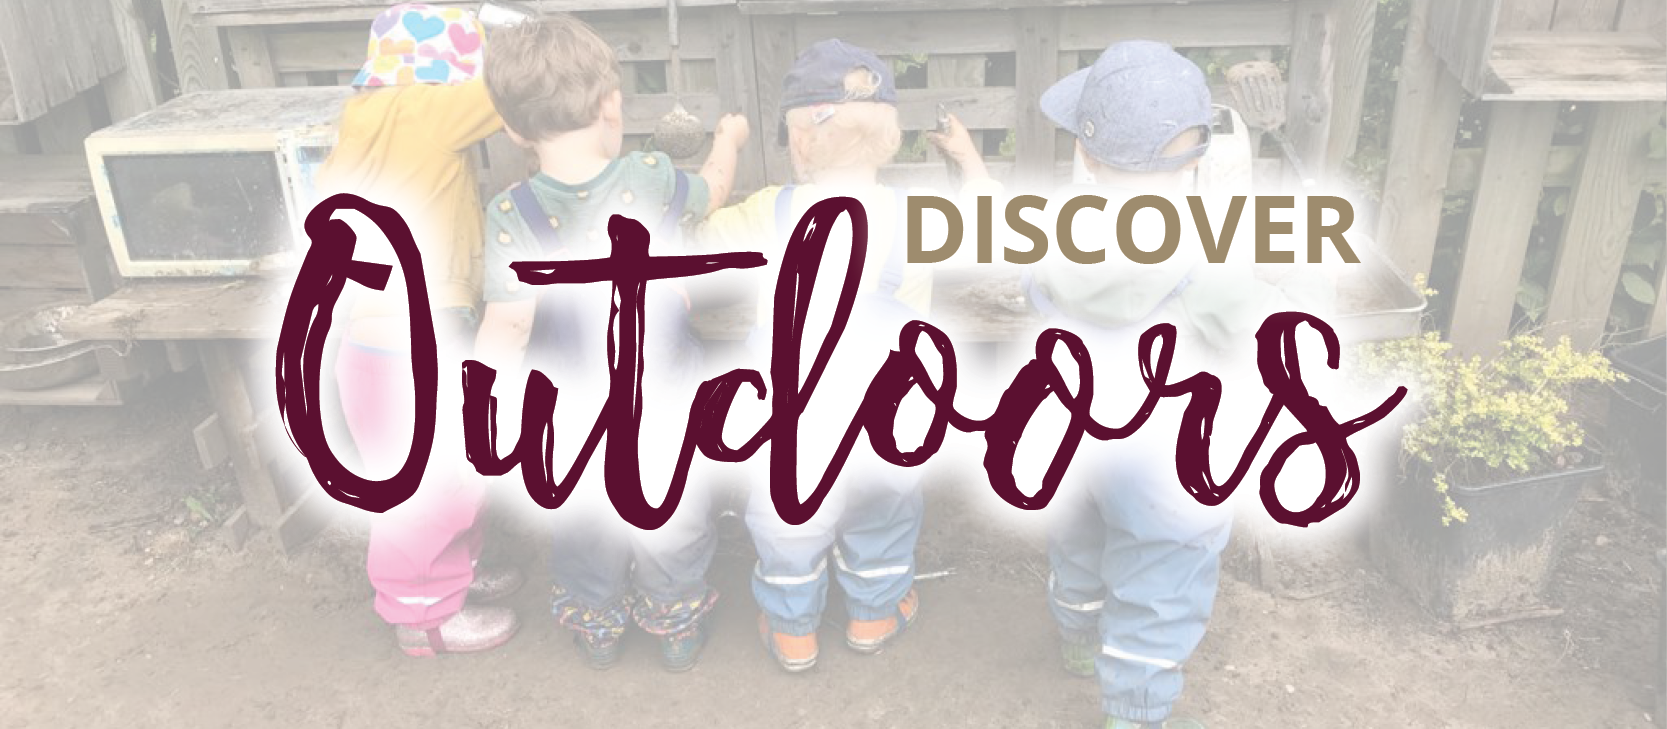 North Gloucestershire Network - Discover Great Outdoors - 12/03/2022